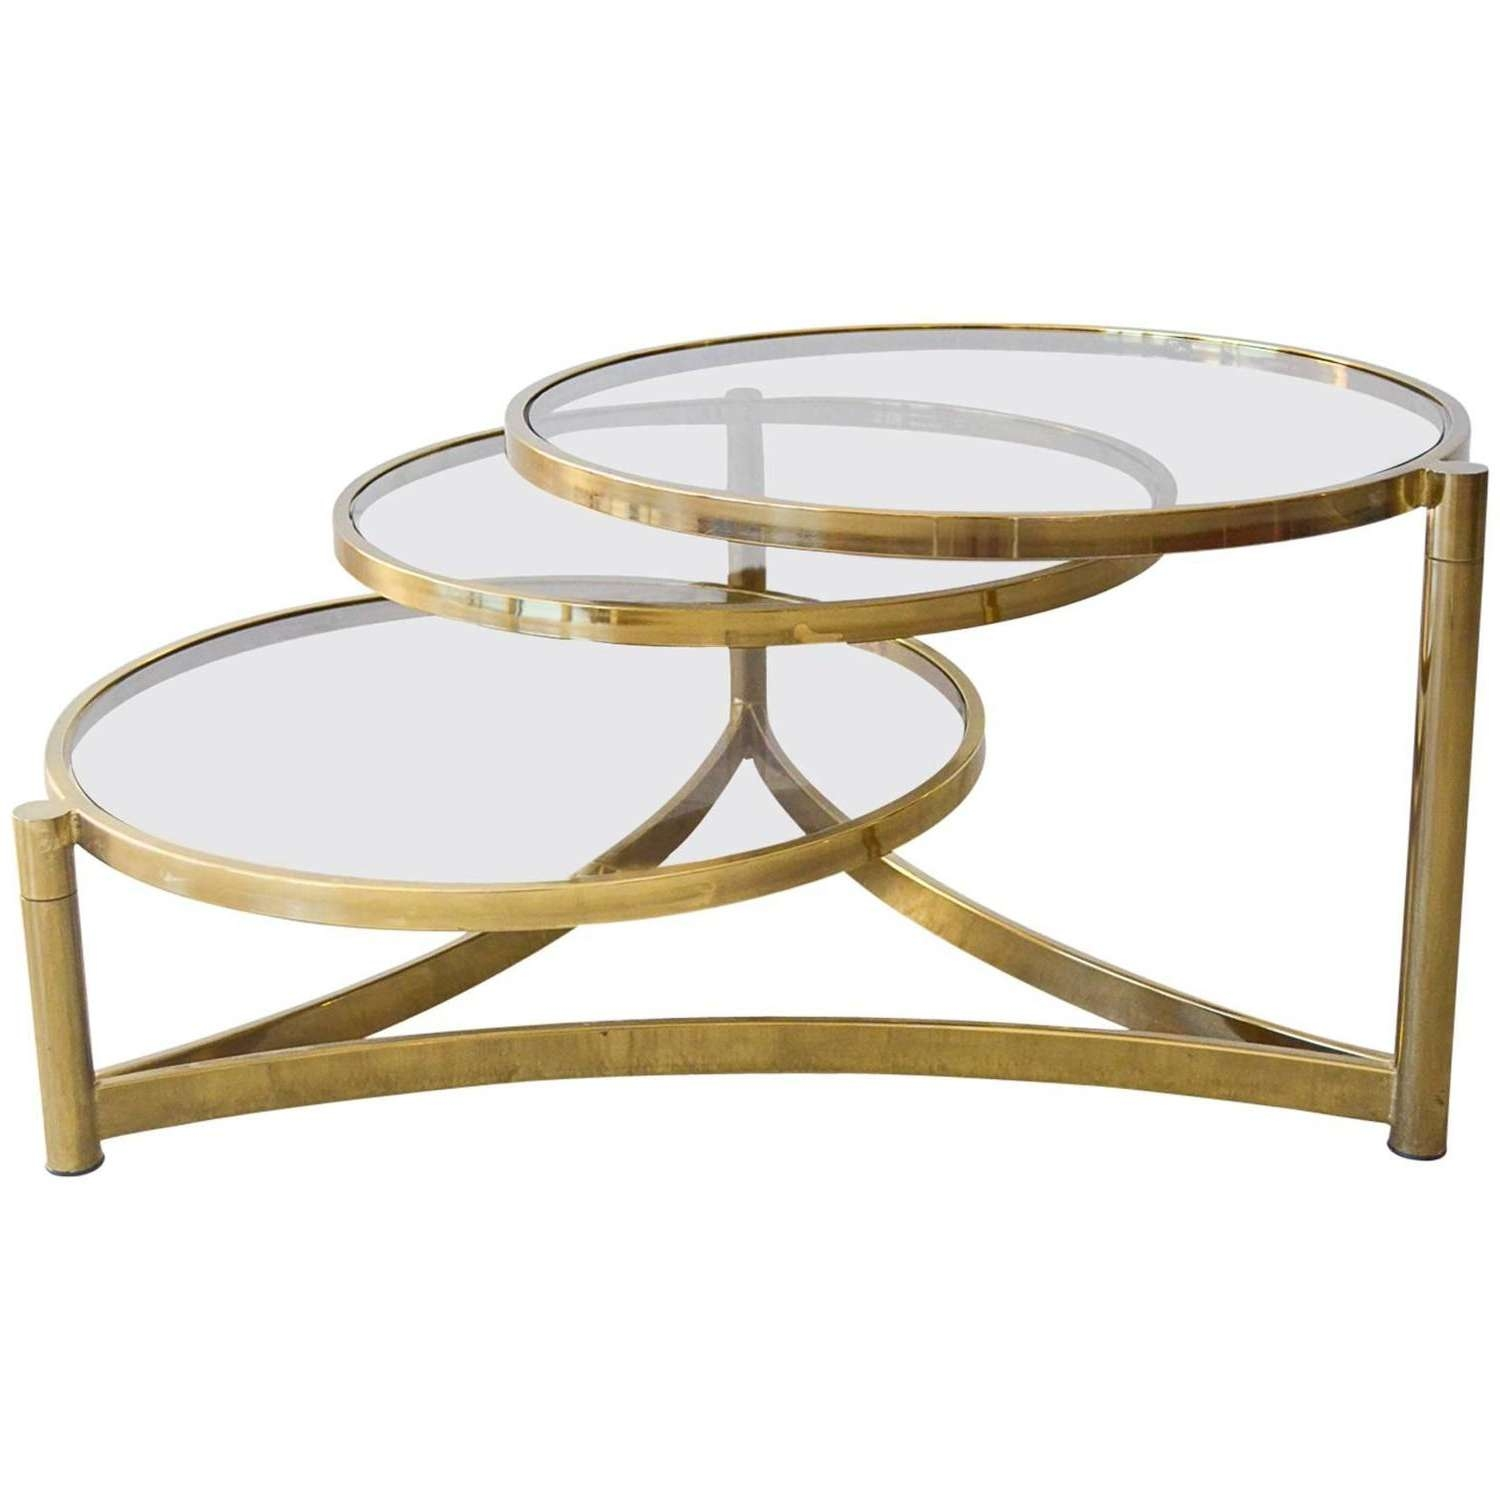 Well Liked Round Swivel Coffee Tables For Coffee Table : Wonderful Brass And Glass Coffee Table Oval Brass (View 13 of 20)